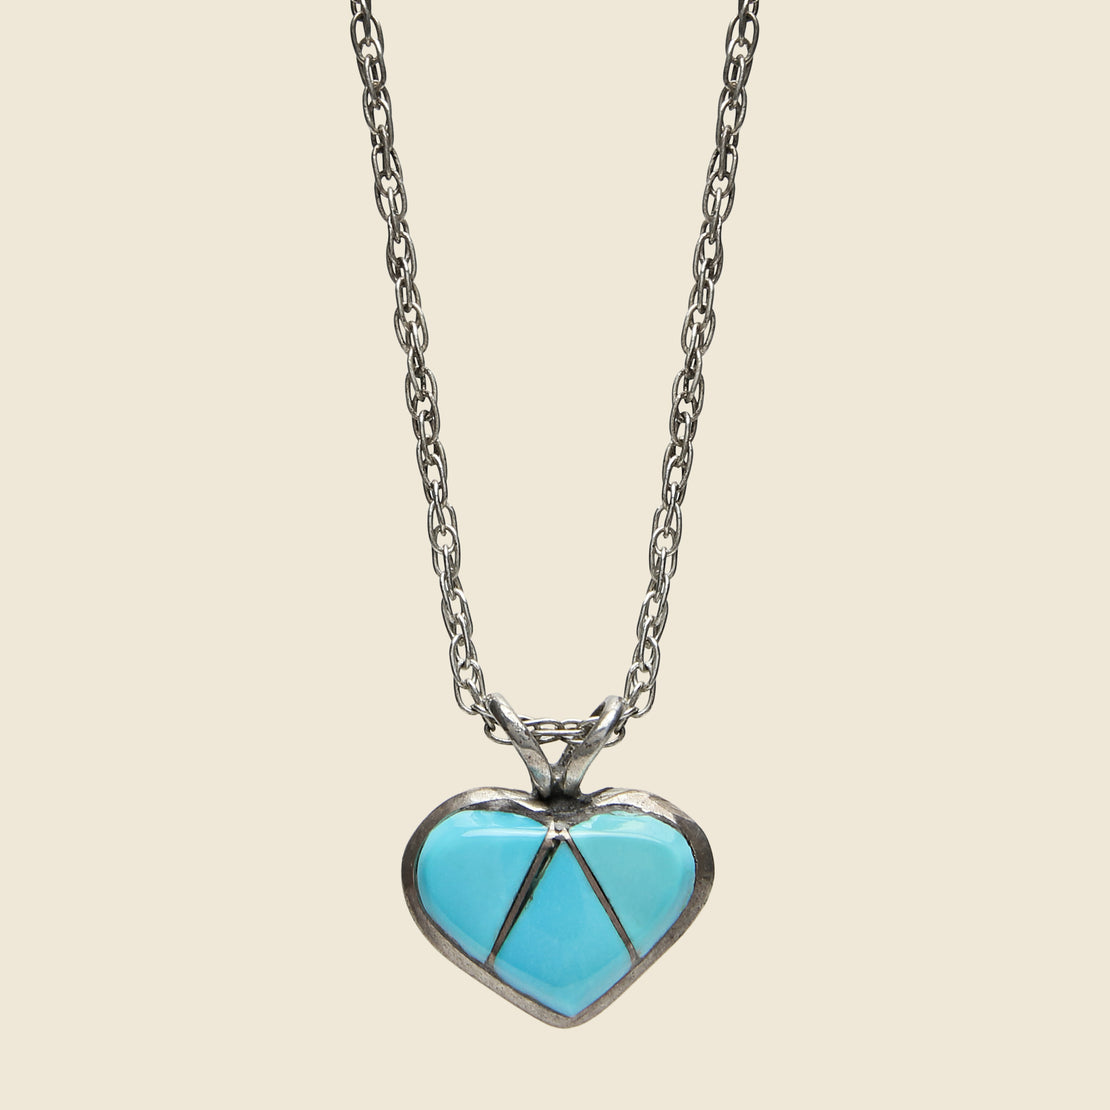 Vintage Zuni Heart Necklace - Sterling/Turquoise